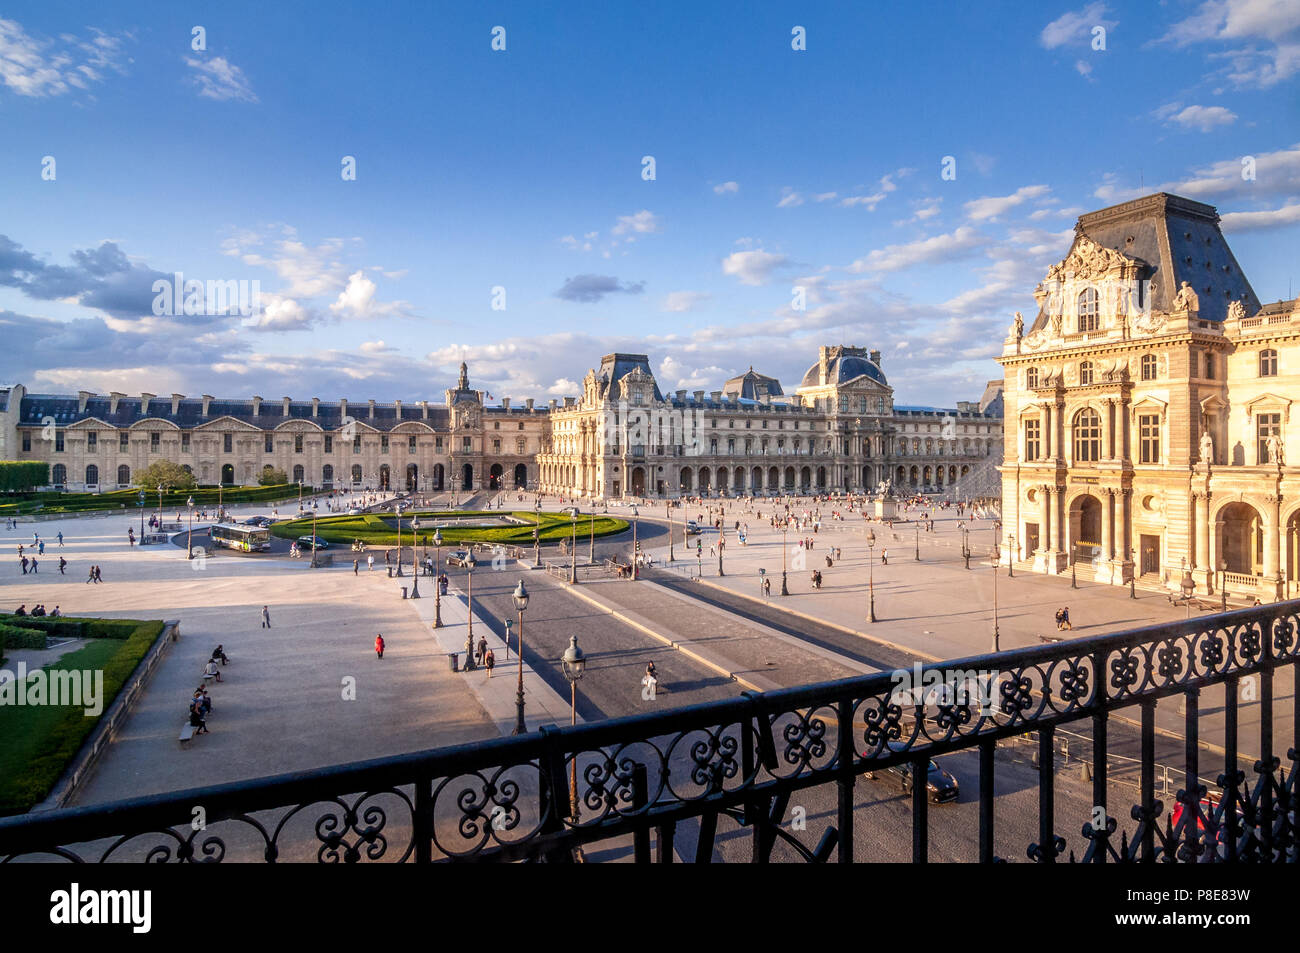 The Tuileries Garden in Paris, France. - Stock Image